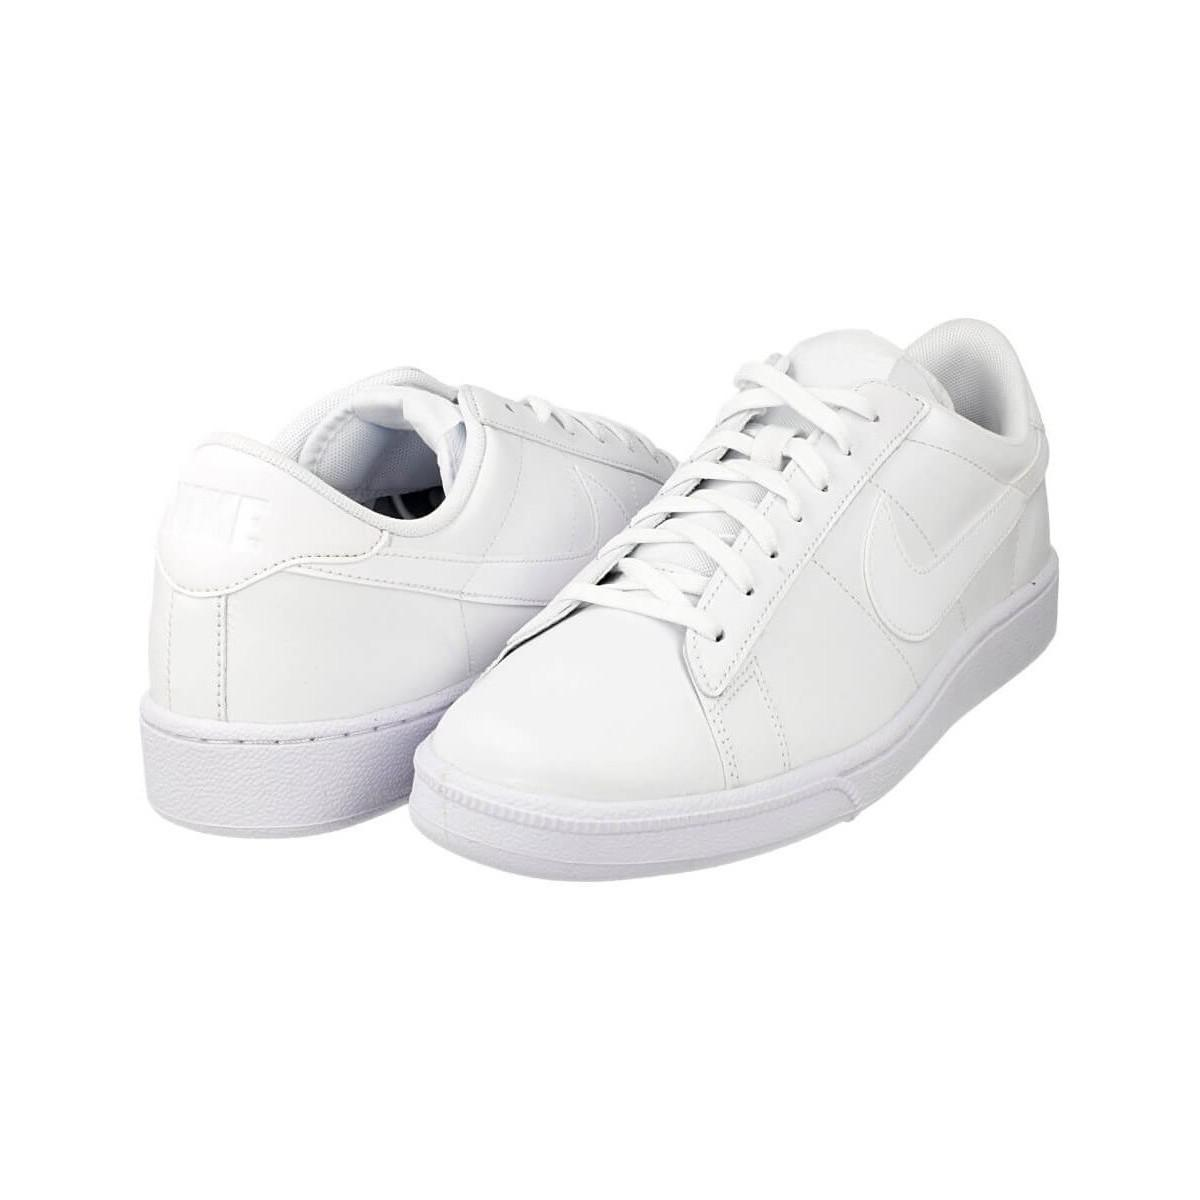 premium selection 31180 7f82a Nike Tennis Classic Cs Men s Shoes (trainers) In White in White for ...